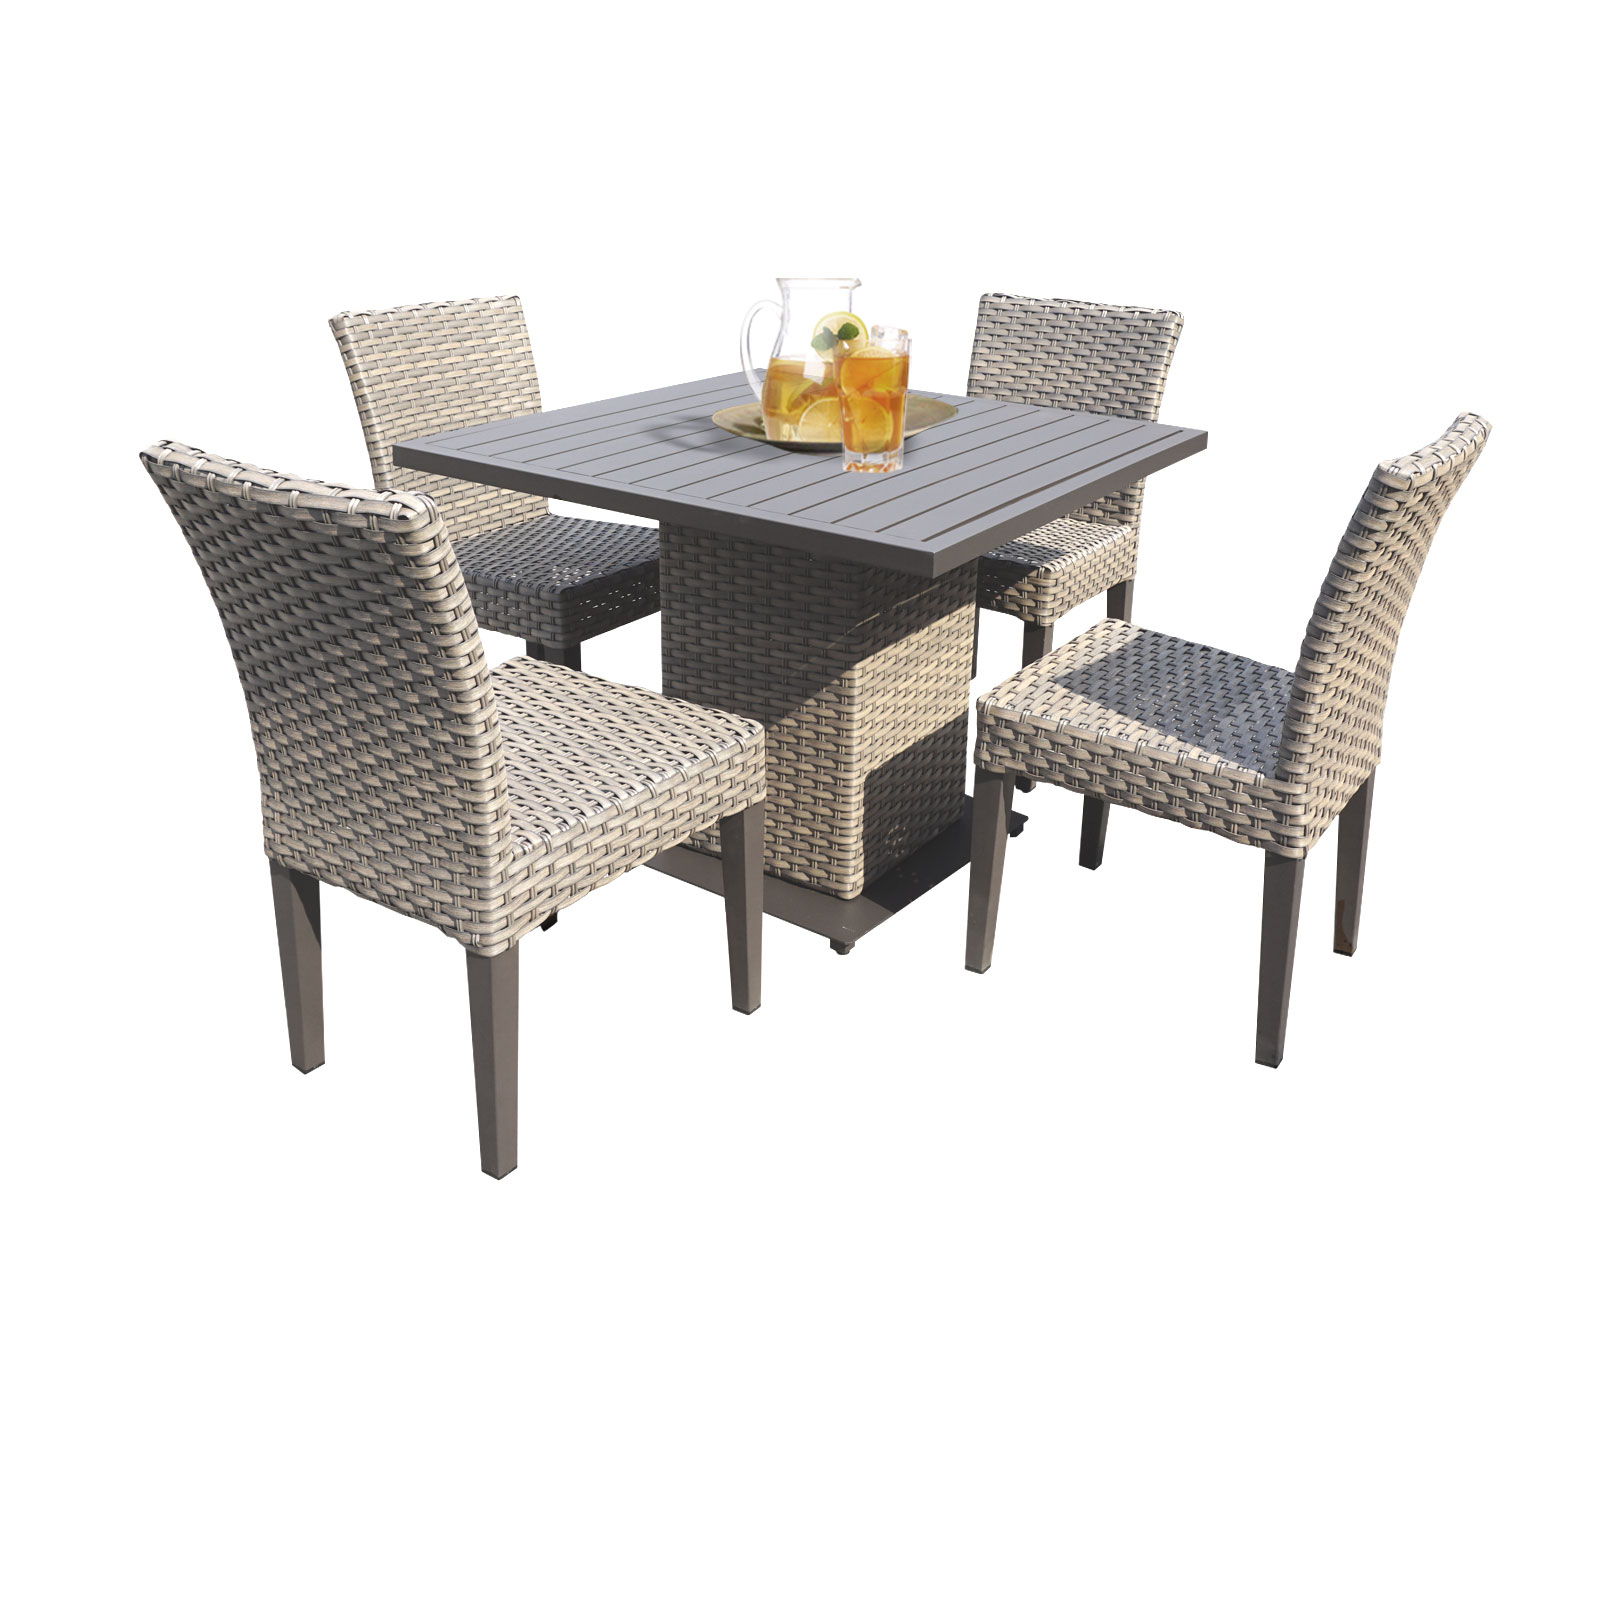 Harmony Square Dining Table with 4 Chairs